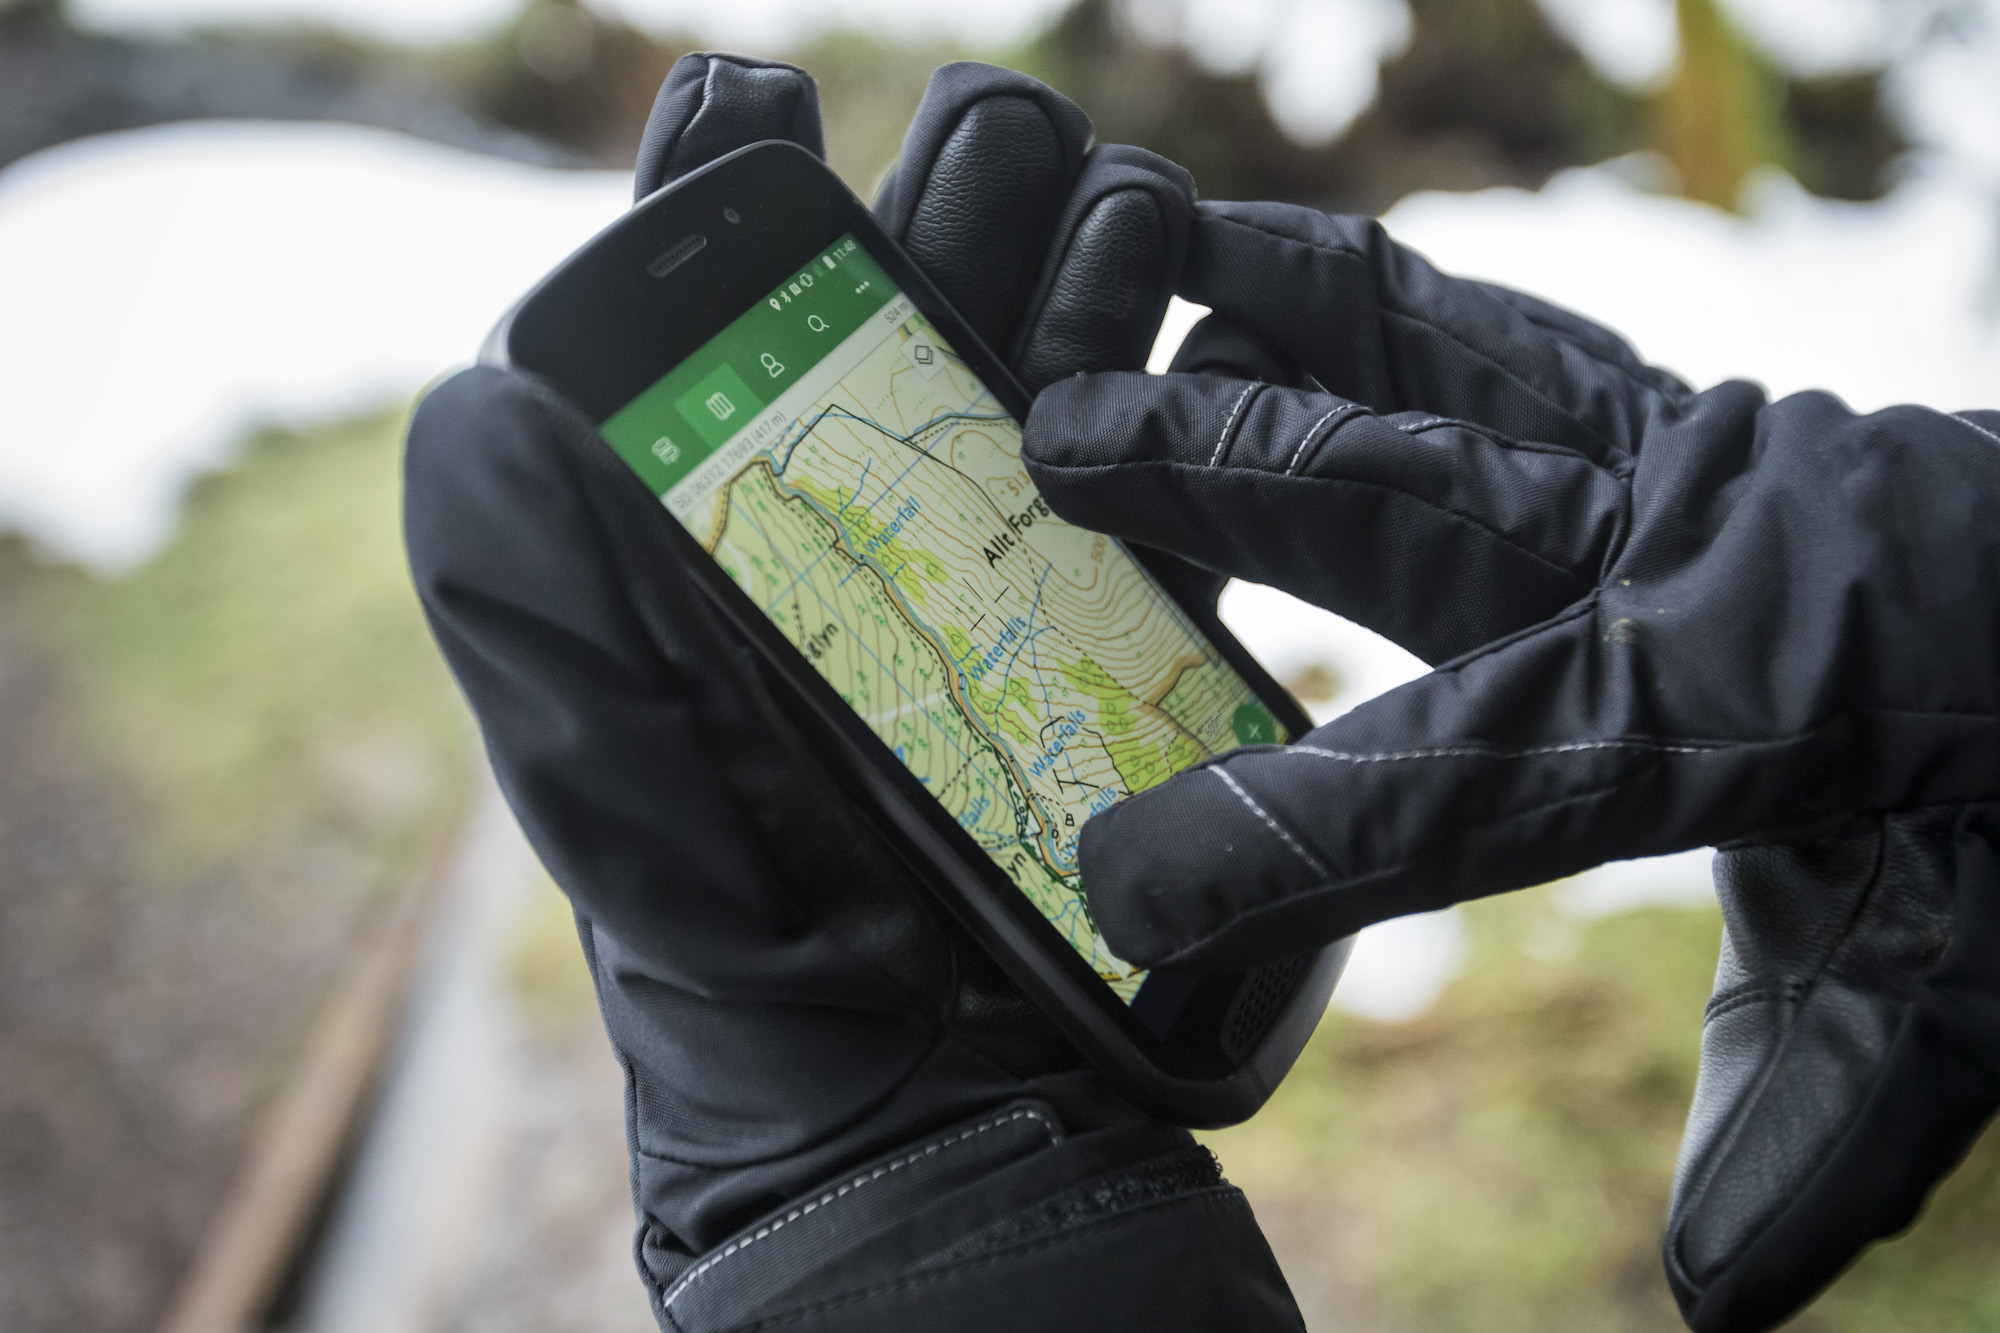 Land Rover unveils its new Explore smartphone